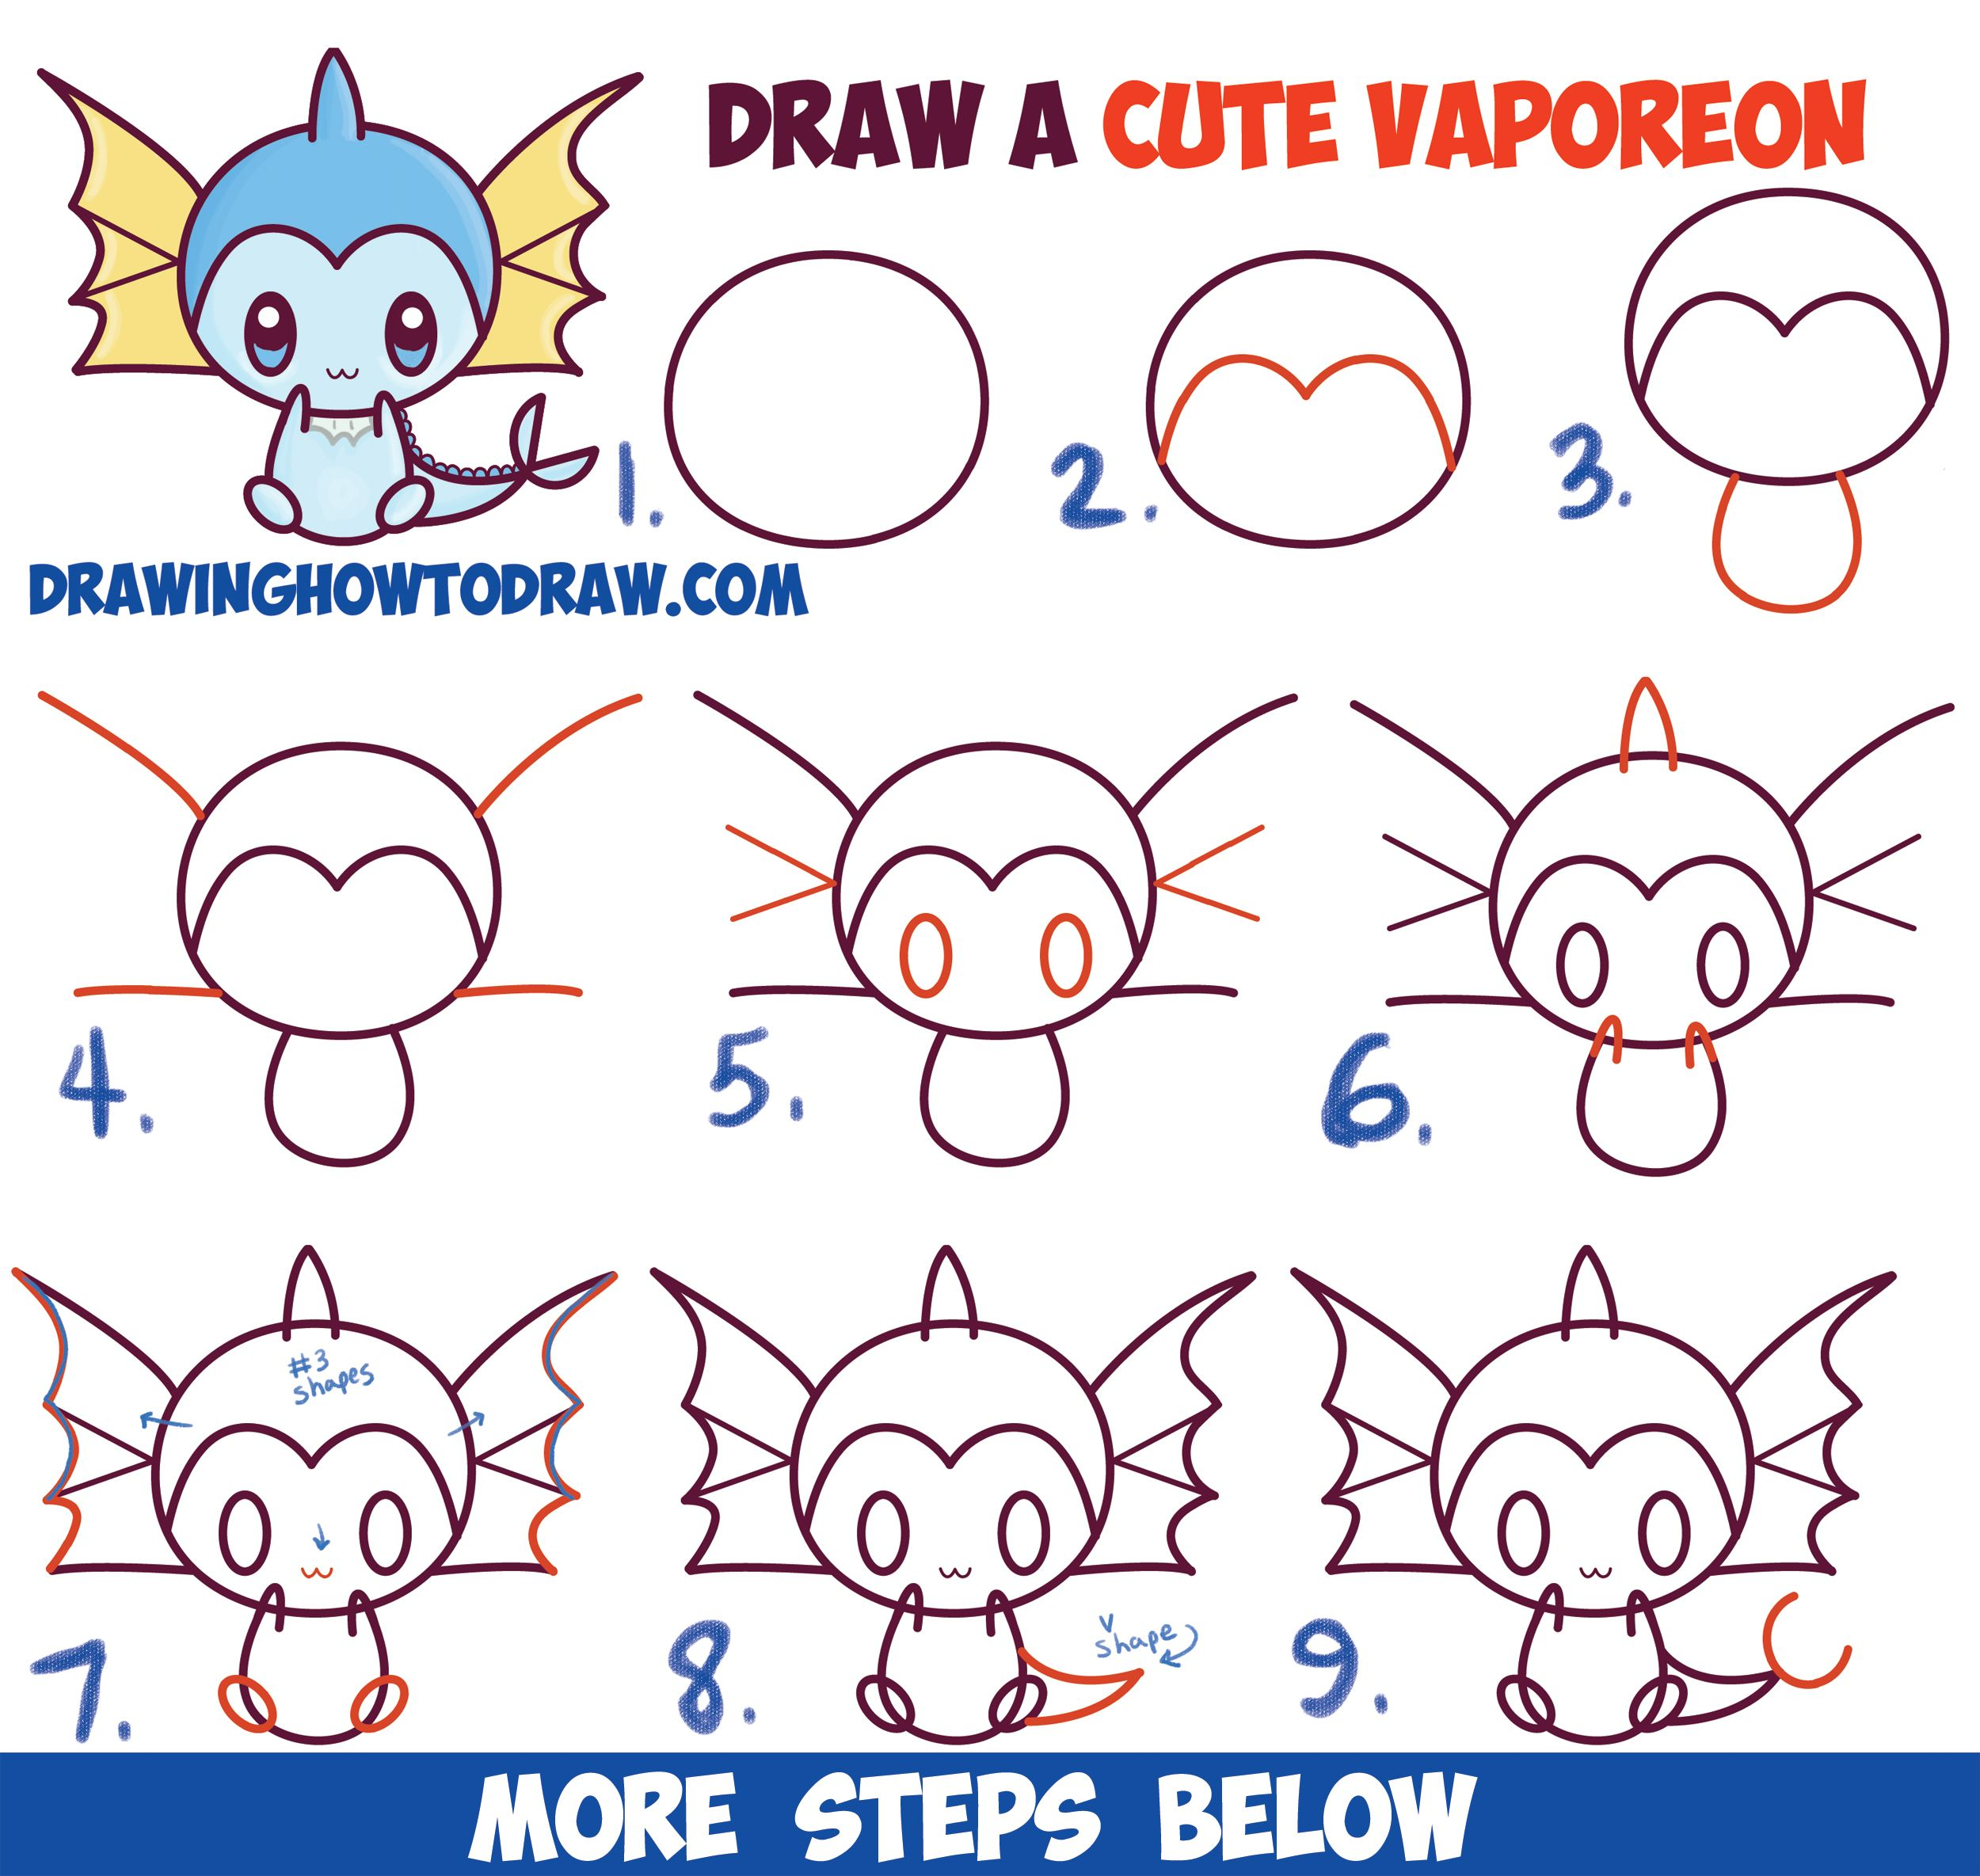 How To Draw Cute Kawaii Chibi Vaporeon From Pokemon Easy